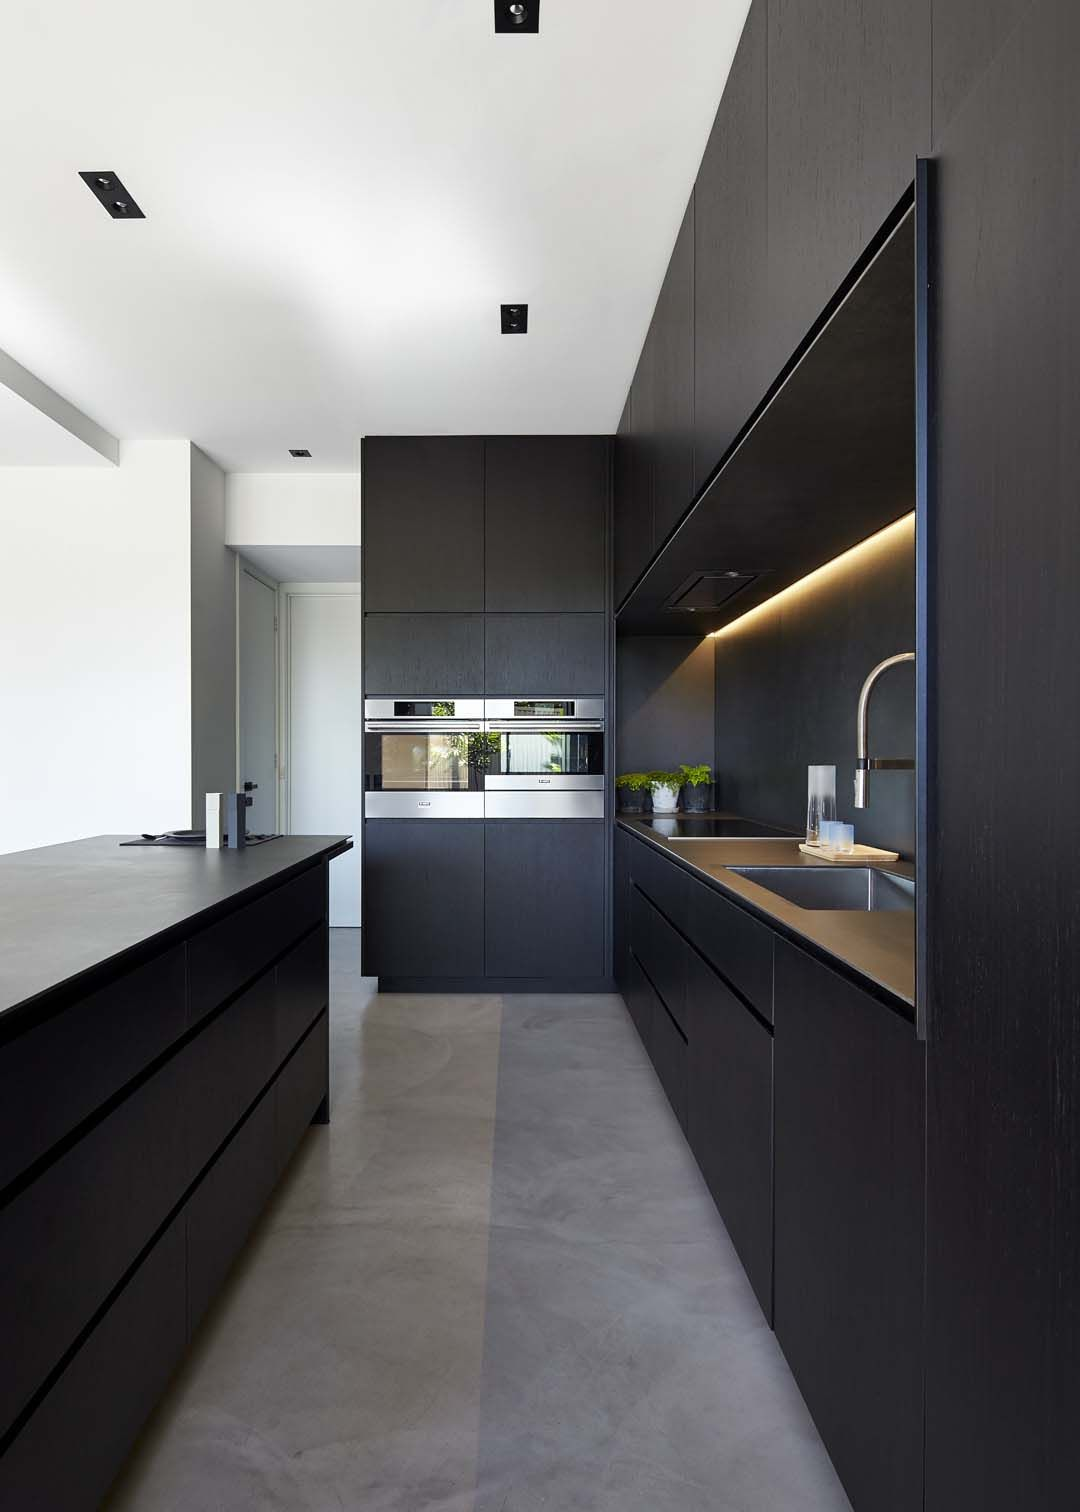 43 Dramatic black kitchens that make a bold statement & 43 Dramatic black kitchens that make a bold statement | Kitchen ...